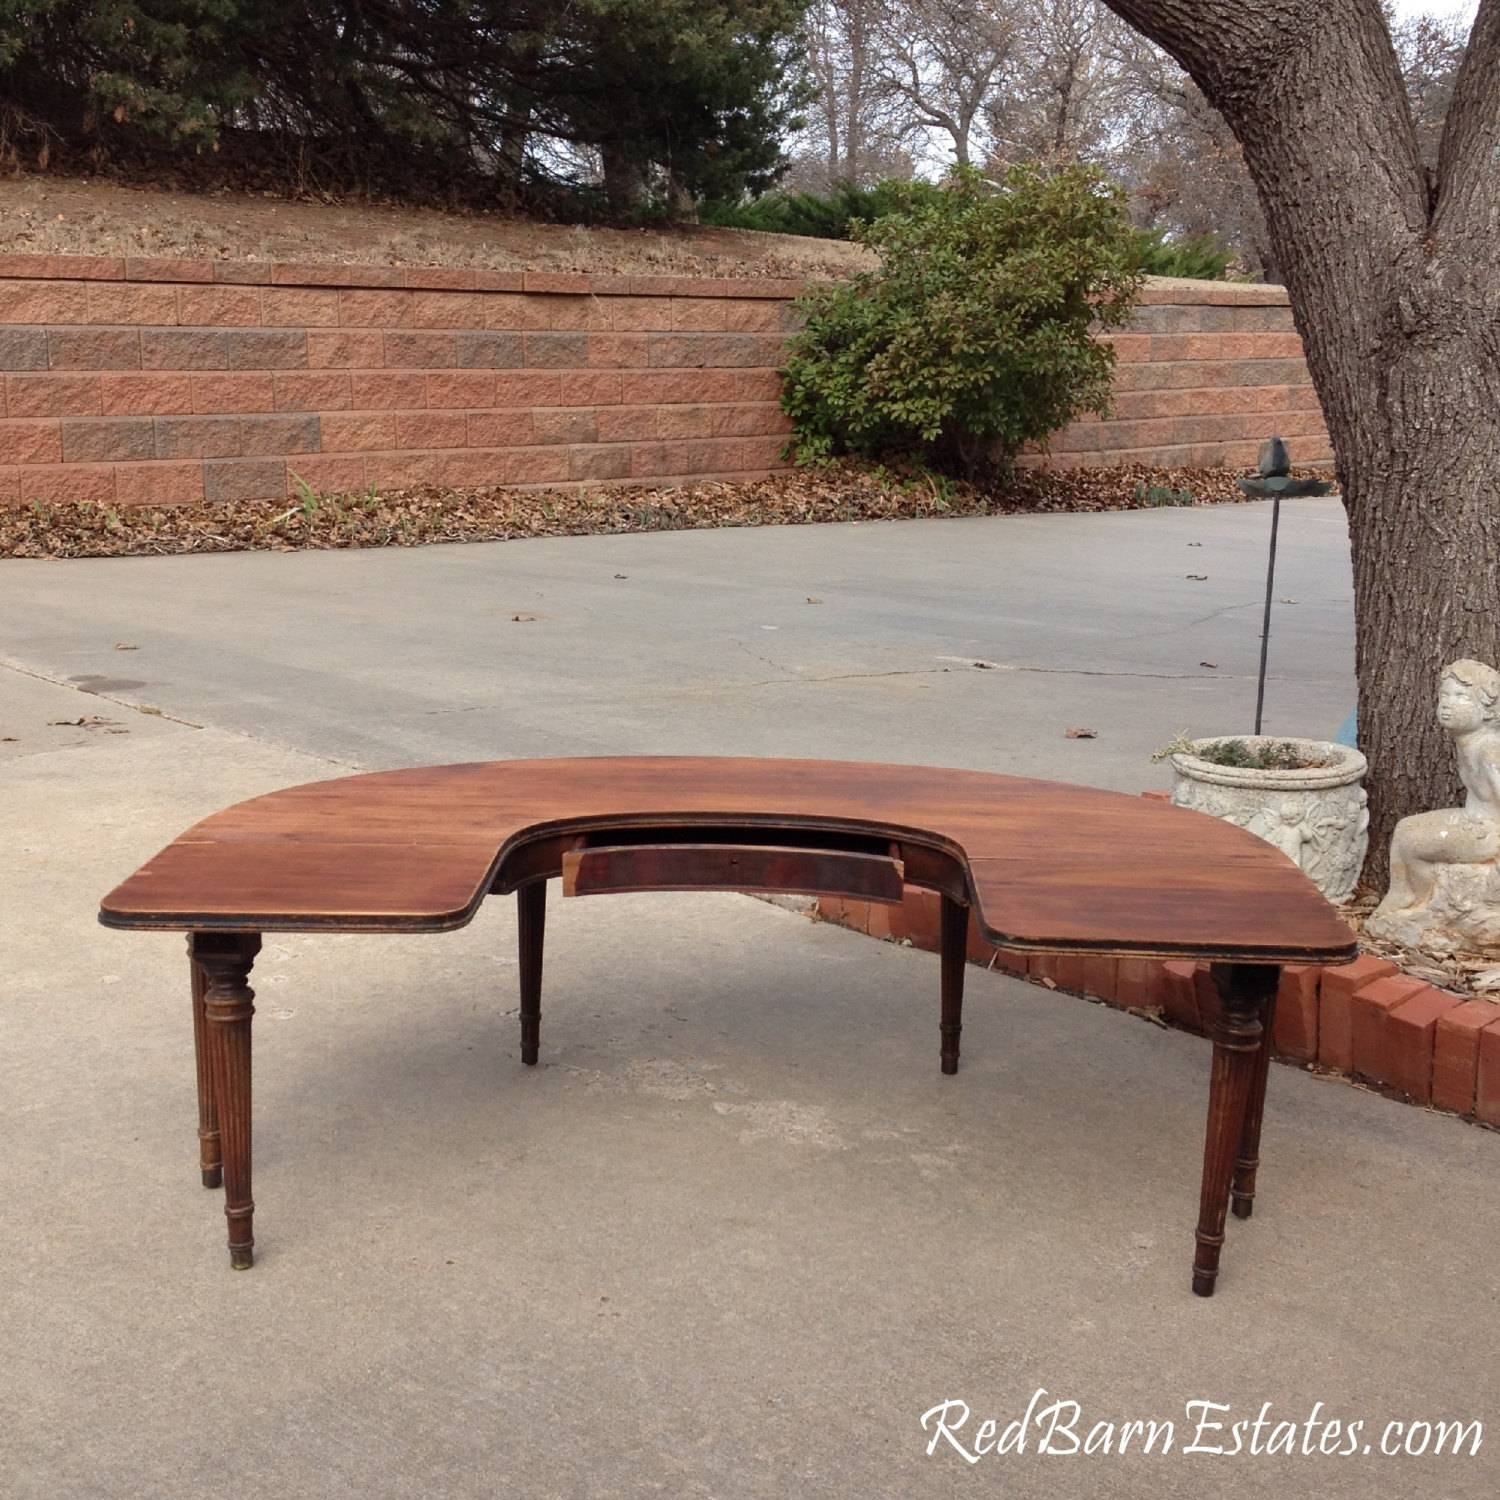 Coffee Table - Round - Half Circle - Drop Leaf Sides - Antique intended for Half Circle Coffee Tables (Image 5 of 30)